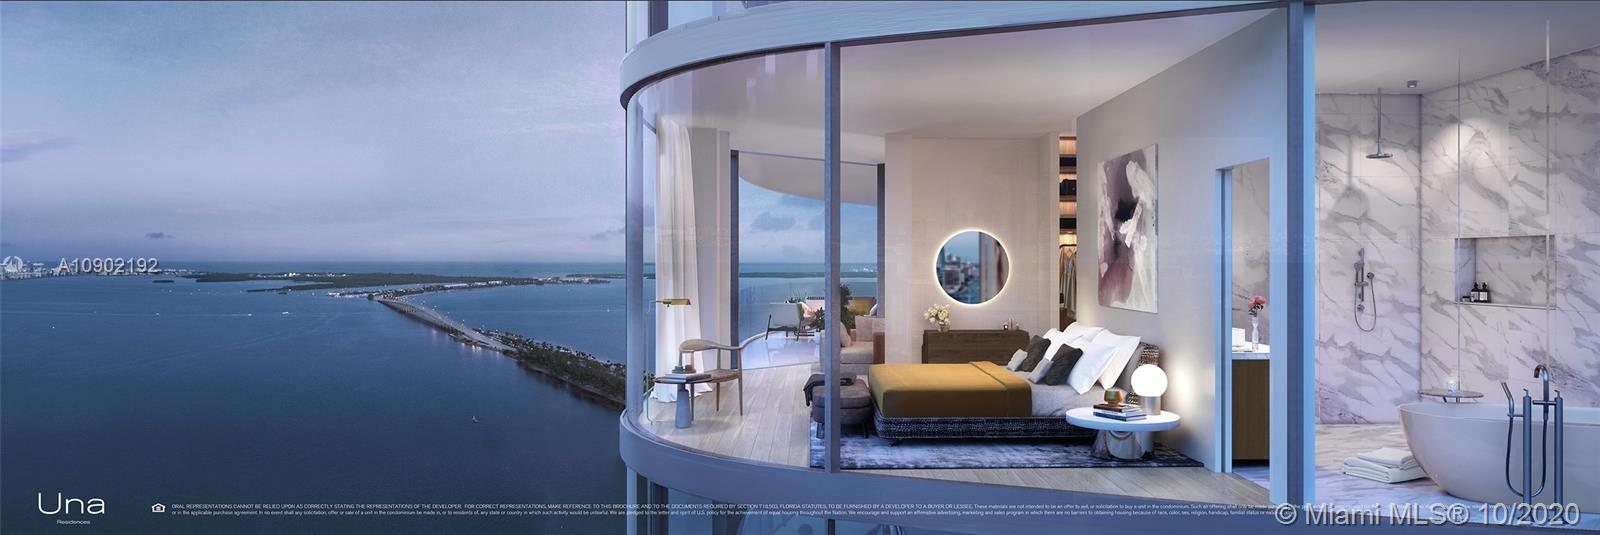 UNA's 135 luxury residences set the standard for Brickell waterfront living with visionary design, inviting gardens and unrivaled views across Biscayne Bay. The 47-story iconic tower is recognizable by the smooth, light metallic surface and striking silhouette that recalls the shape of a wave. 2-5 bedroom residences feature 11 ft floor-to-ceiling glass and expansive terraces as well as an array of amenities including three pools, a spa and gym elegantly envisioned by the chairman of Aman, private elevators and private boat slips. With easy access to Coconut Grove, Downtown, Brickell, MIA and the beaches of Key Biscayne, UNA is exemplar for Miami Living.